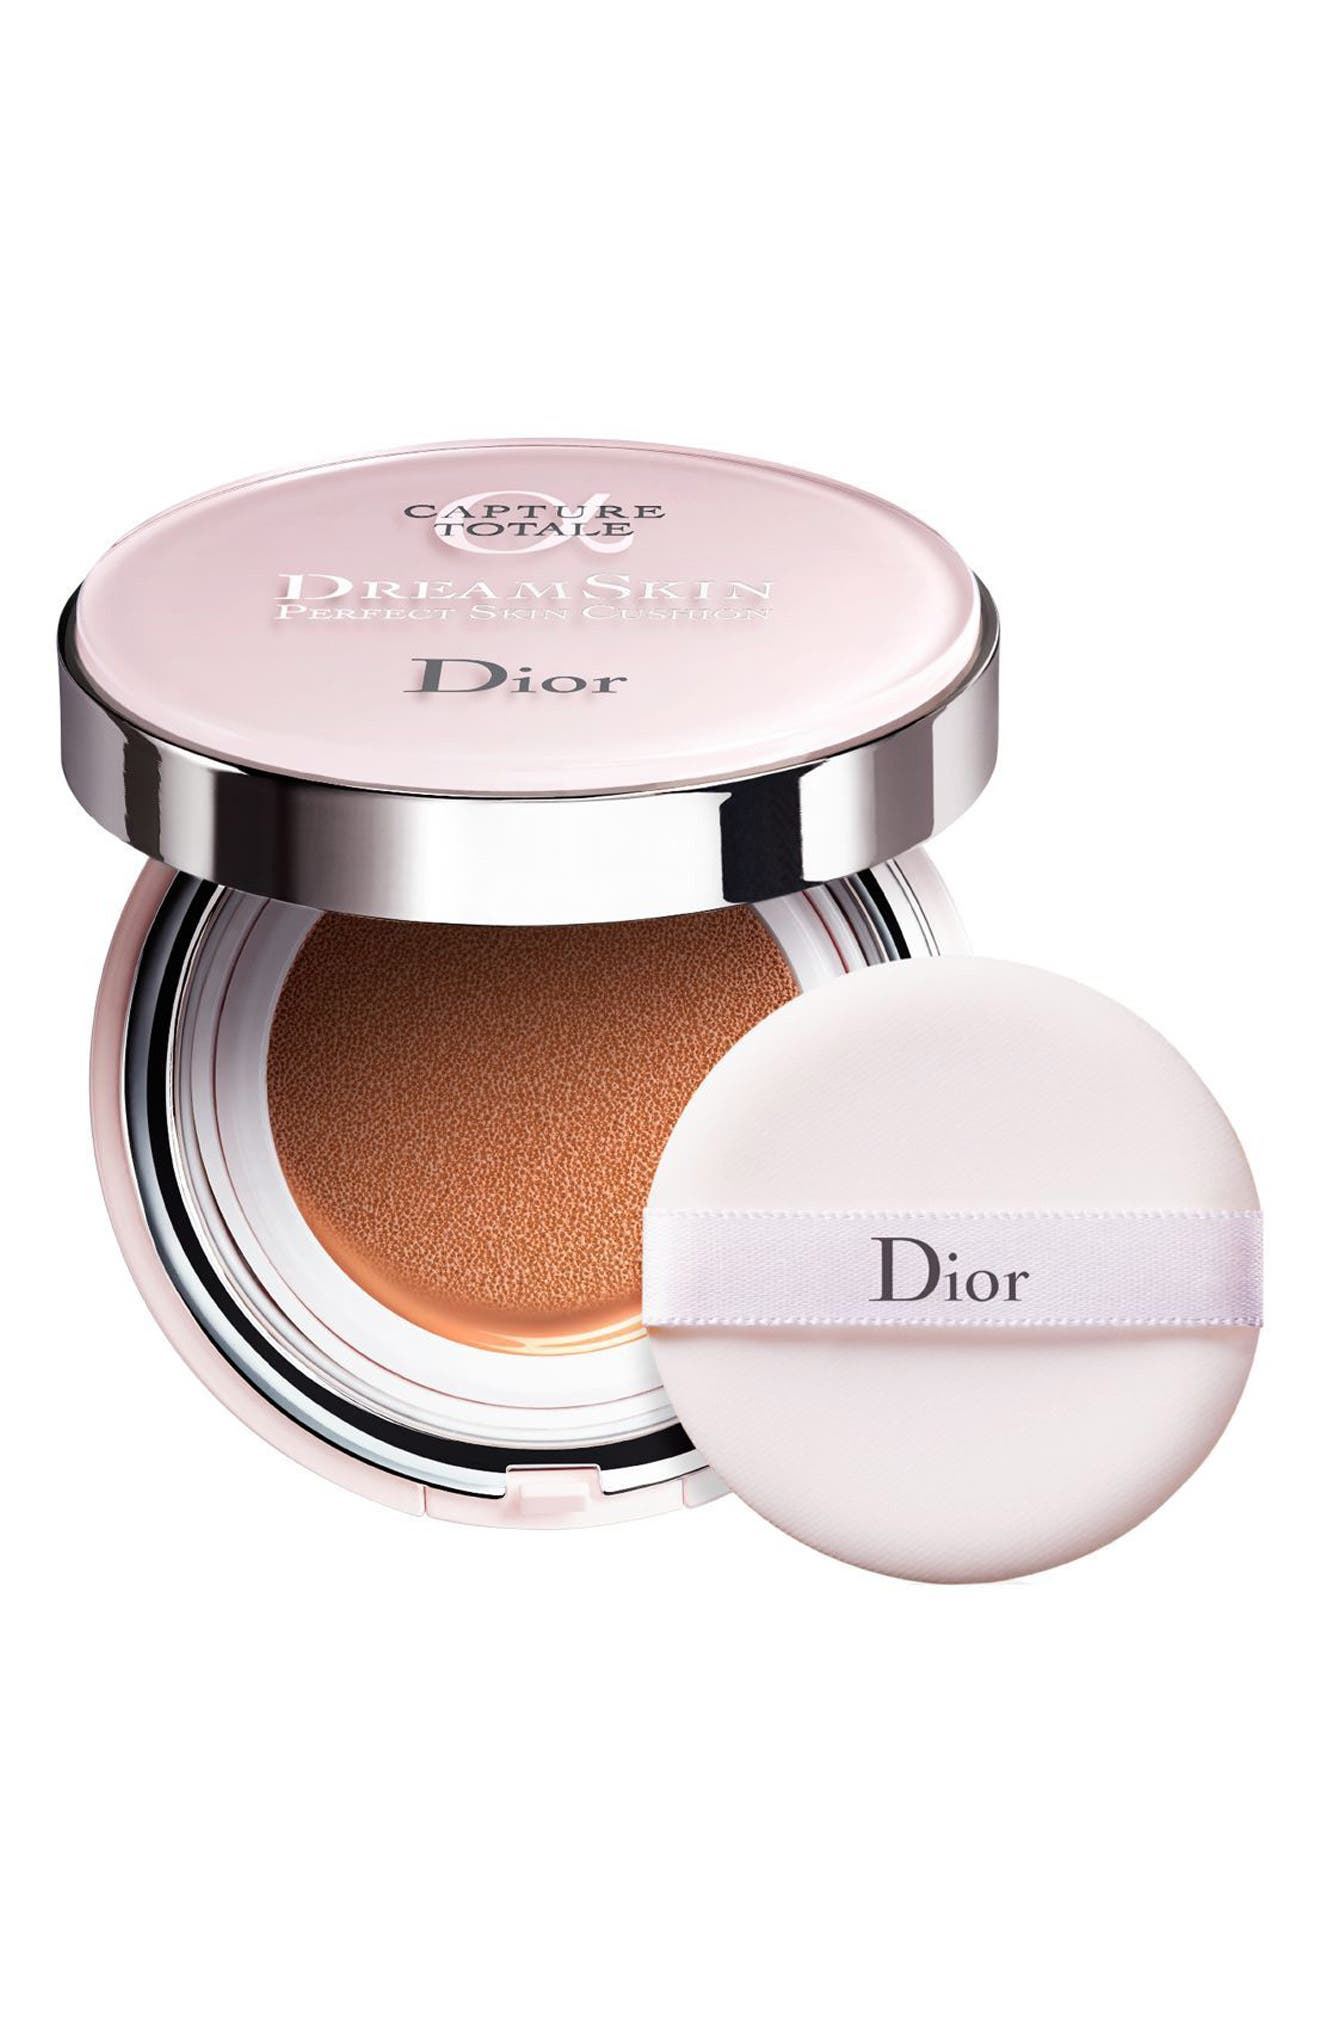 DIOR Capture Totale Dreamskin Perfect Skin Cushion Broad